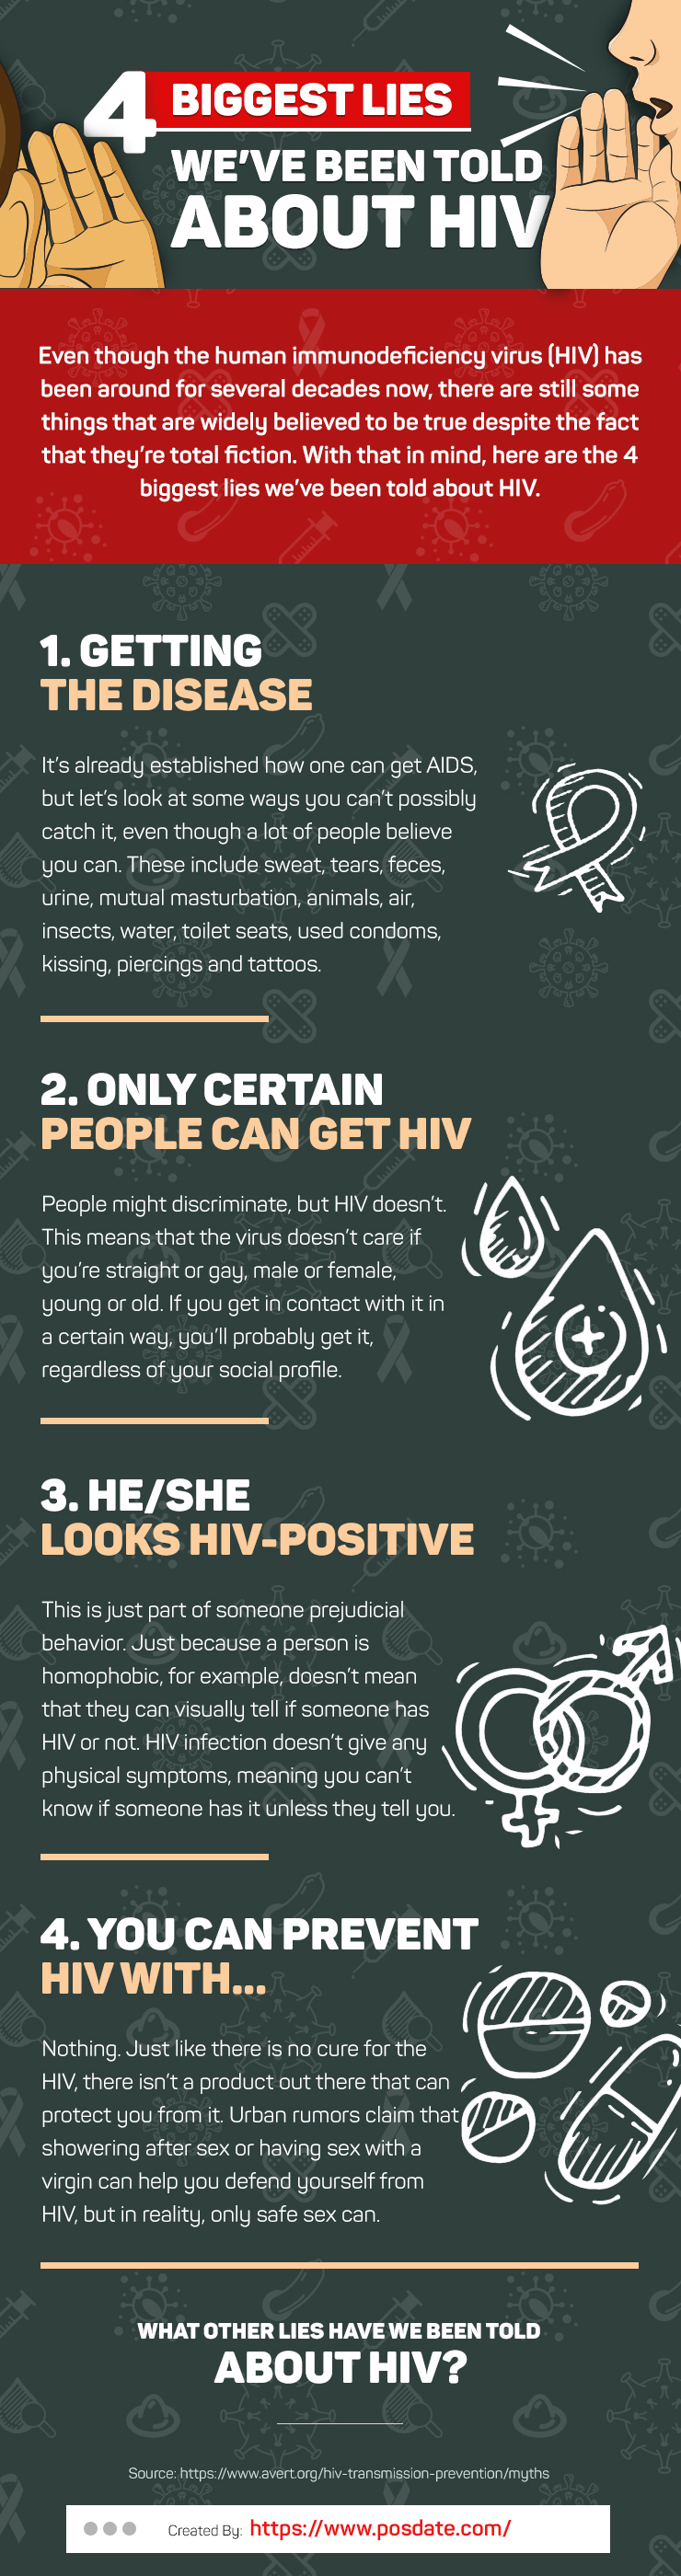 4 Biggest Lies We've Been Told about HIV